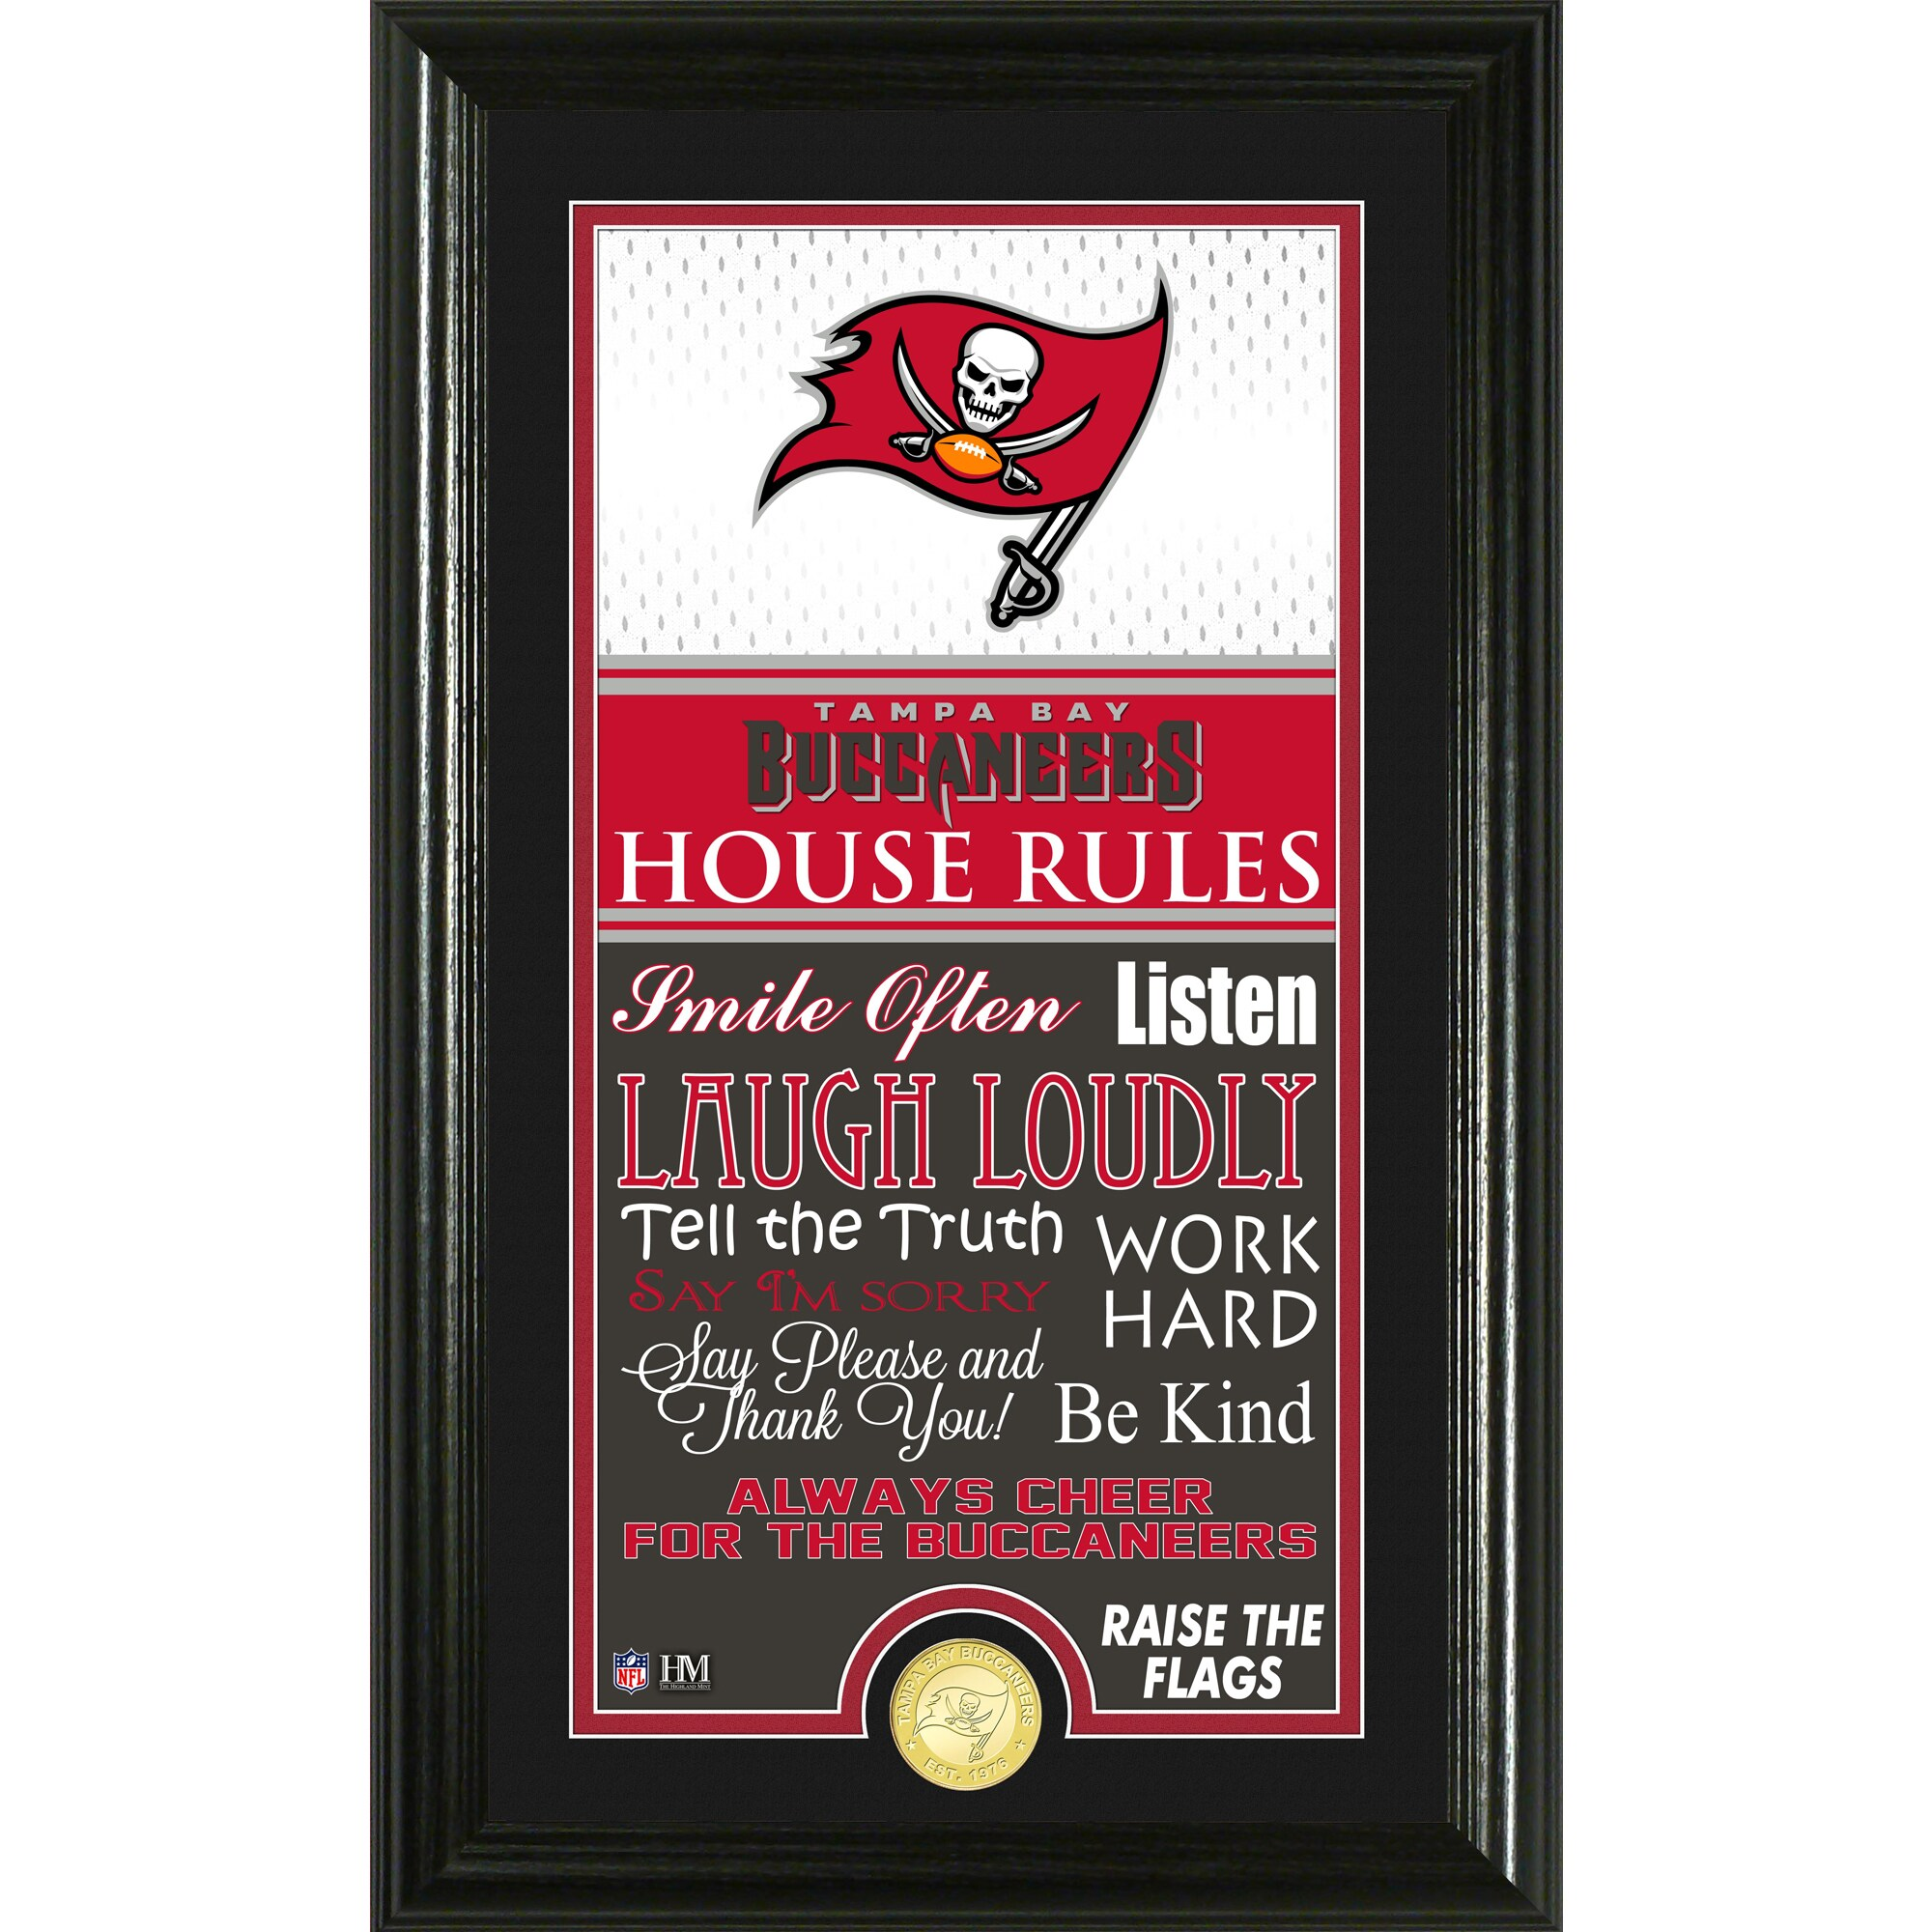 Tampa Bay Buccaneers Highland Mint 12'' x 20'' House Rules Supreme Photo Mint